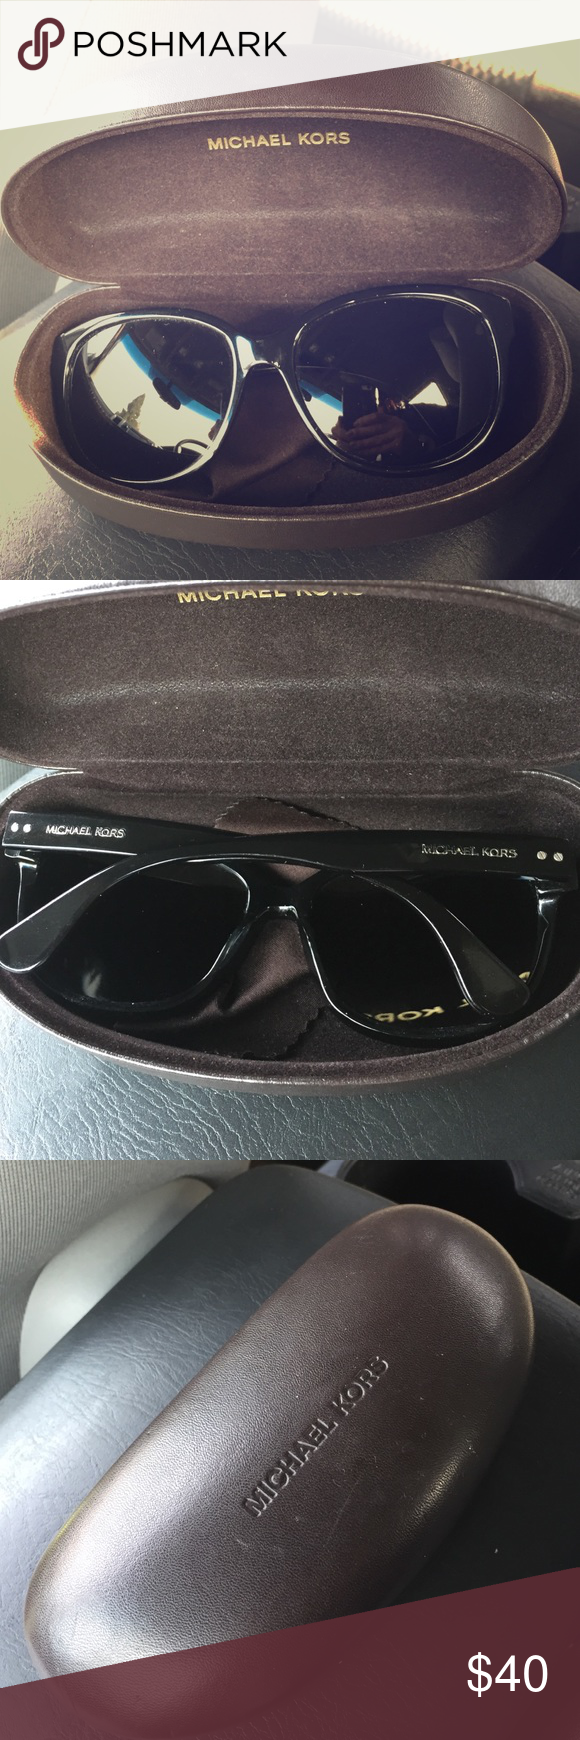 Michael Kors Sunglasses Preloved with just a slight scratch and scruff on the right side of sunglasses. Case has a few scuffs outside. Michael Kors Accessories Sunglasses